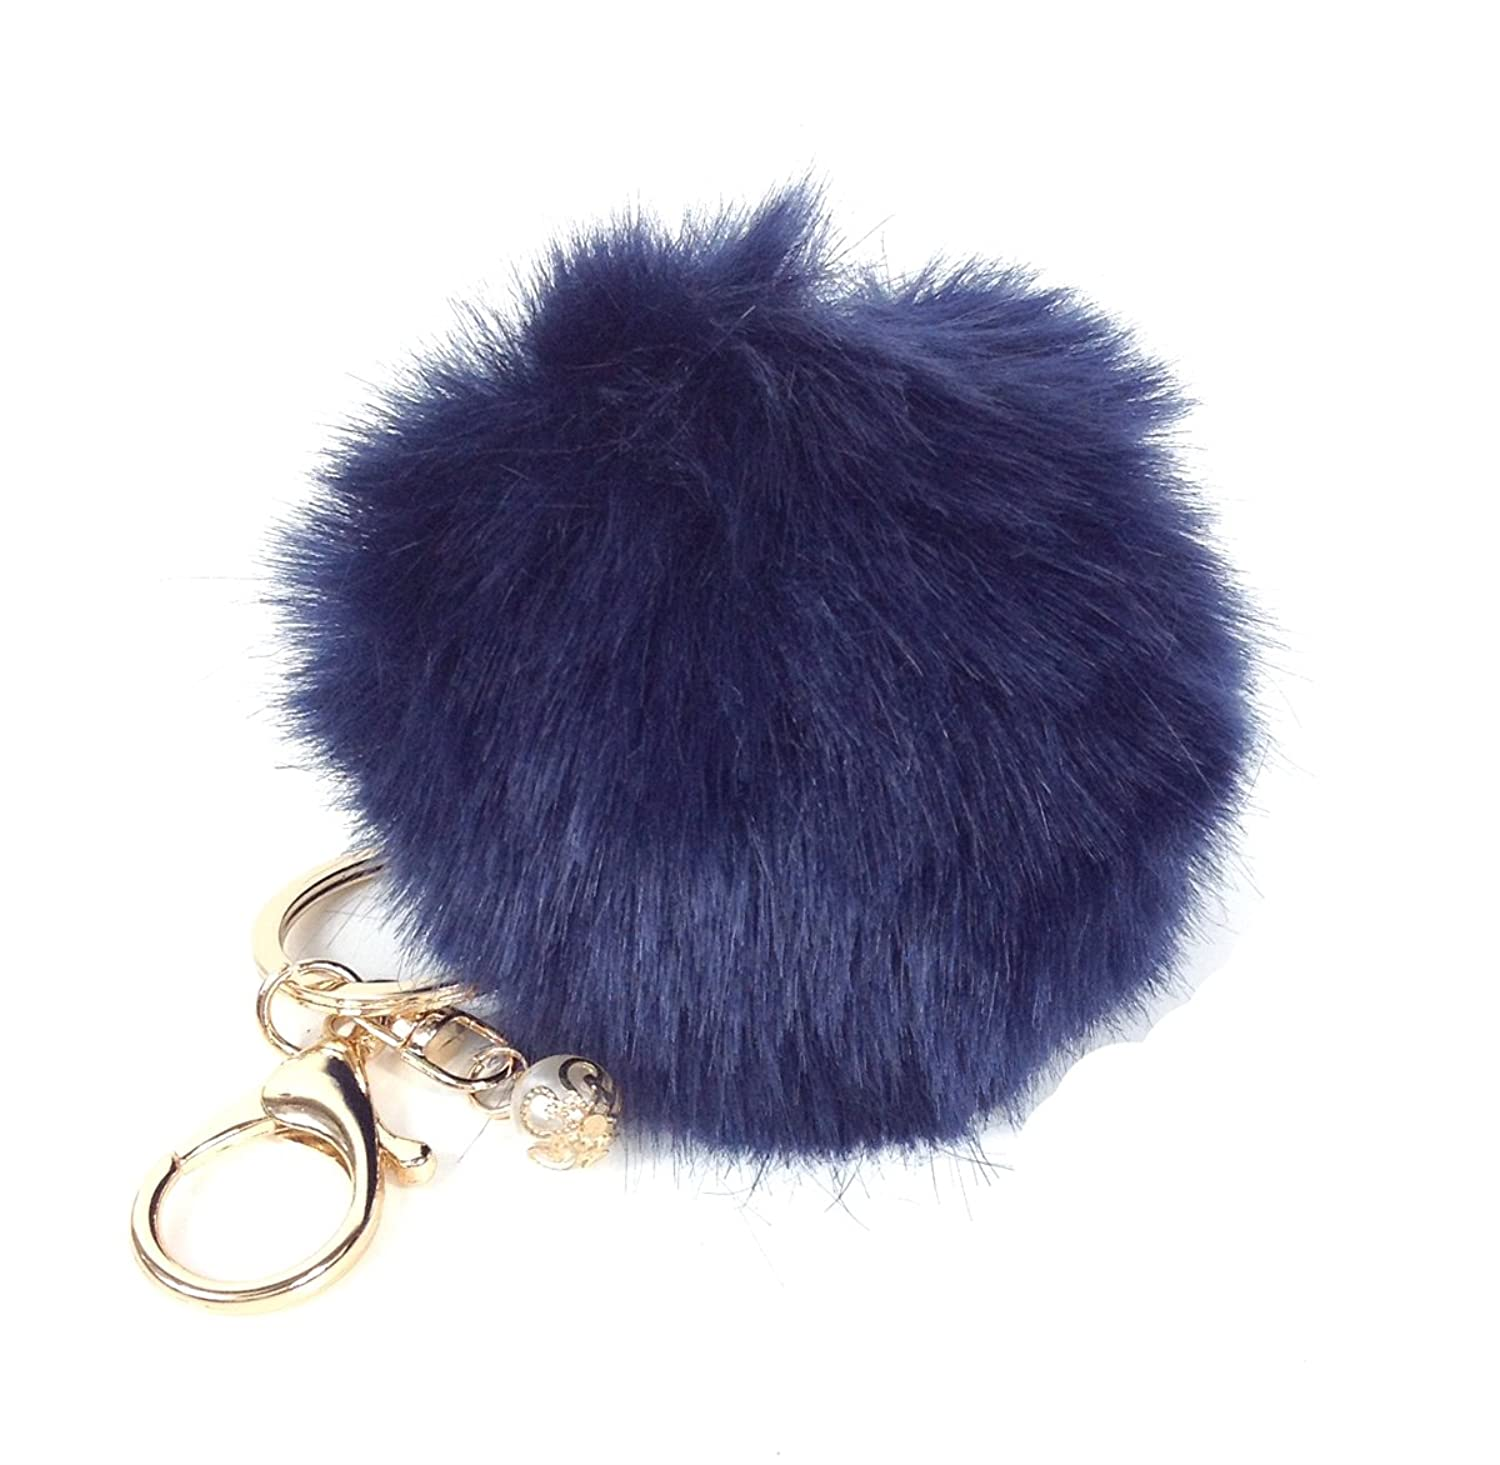 Fashion Culture Faux Fur Pom Pom Purse Charm Keychain